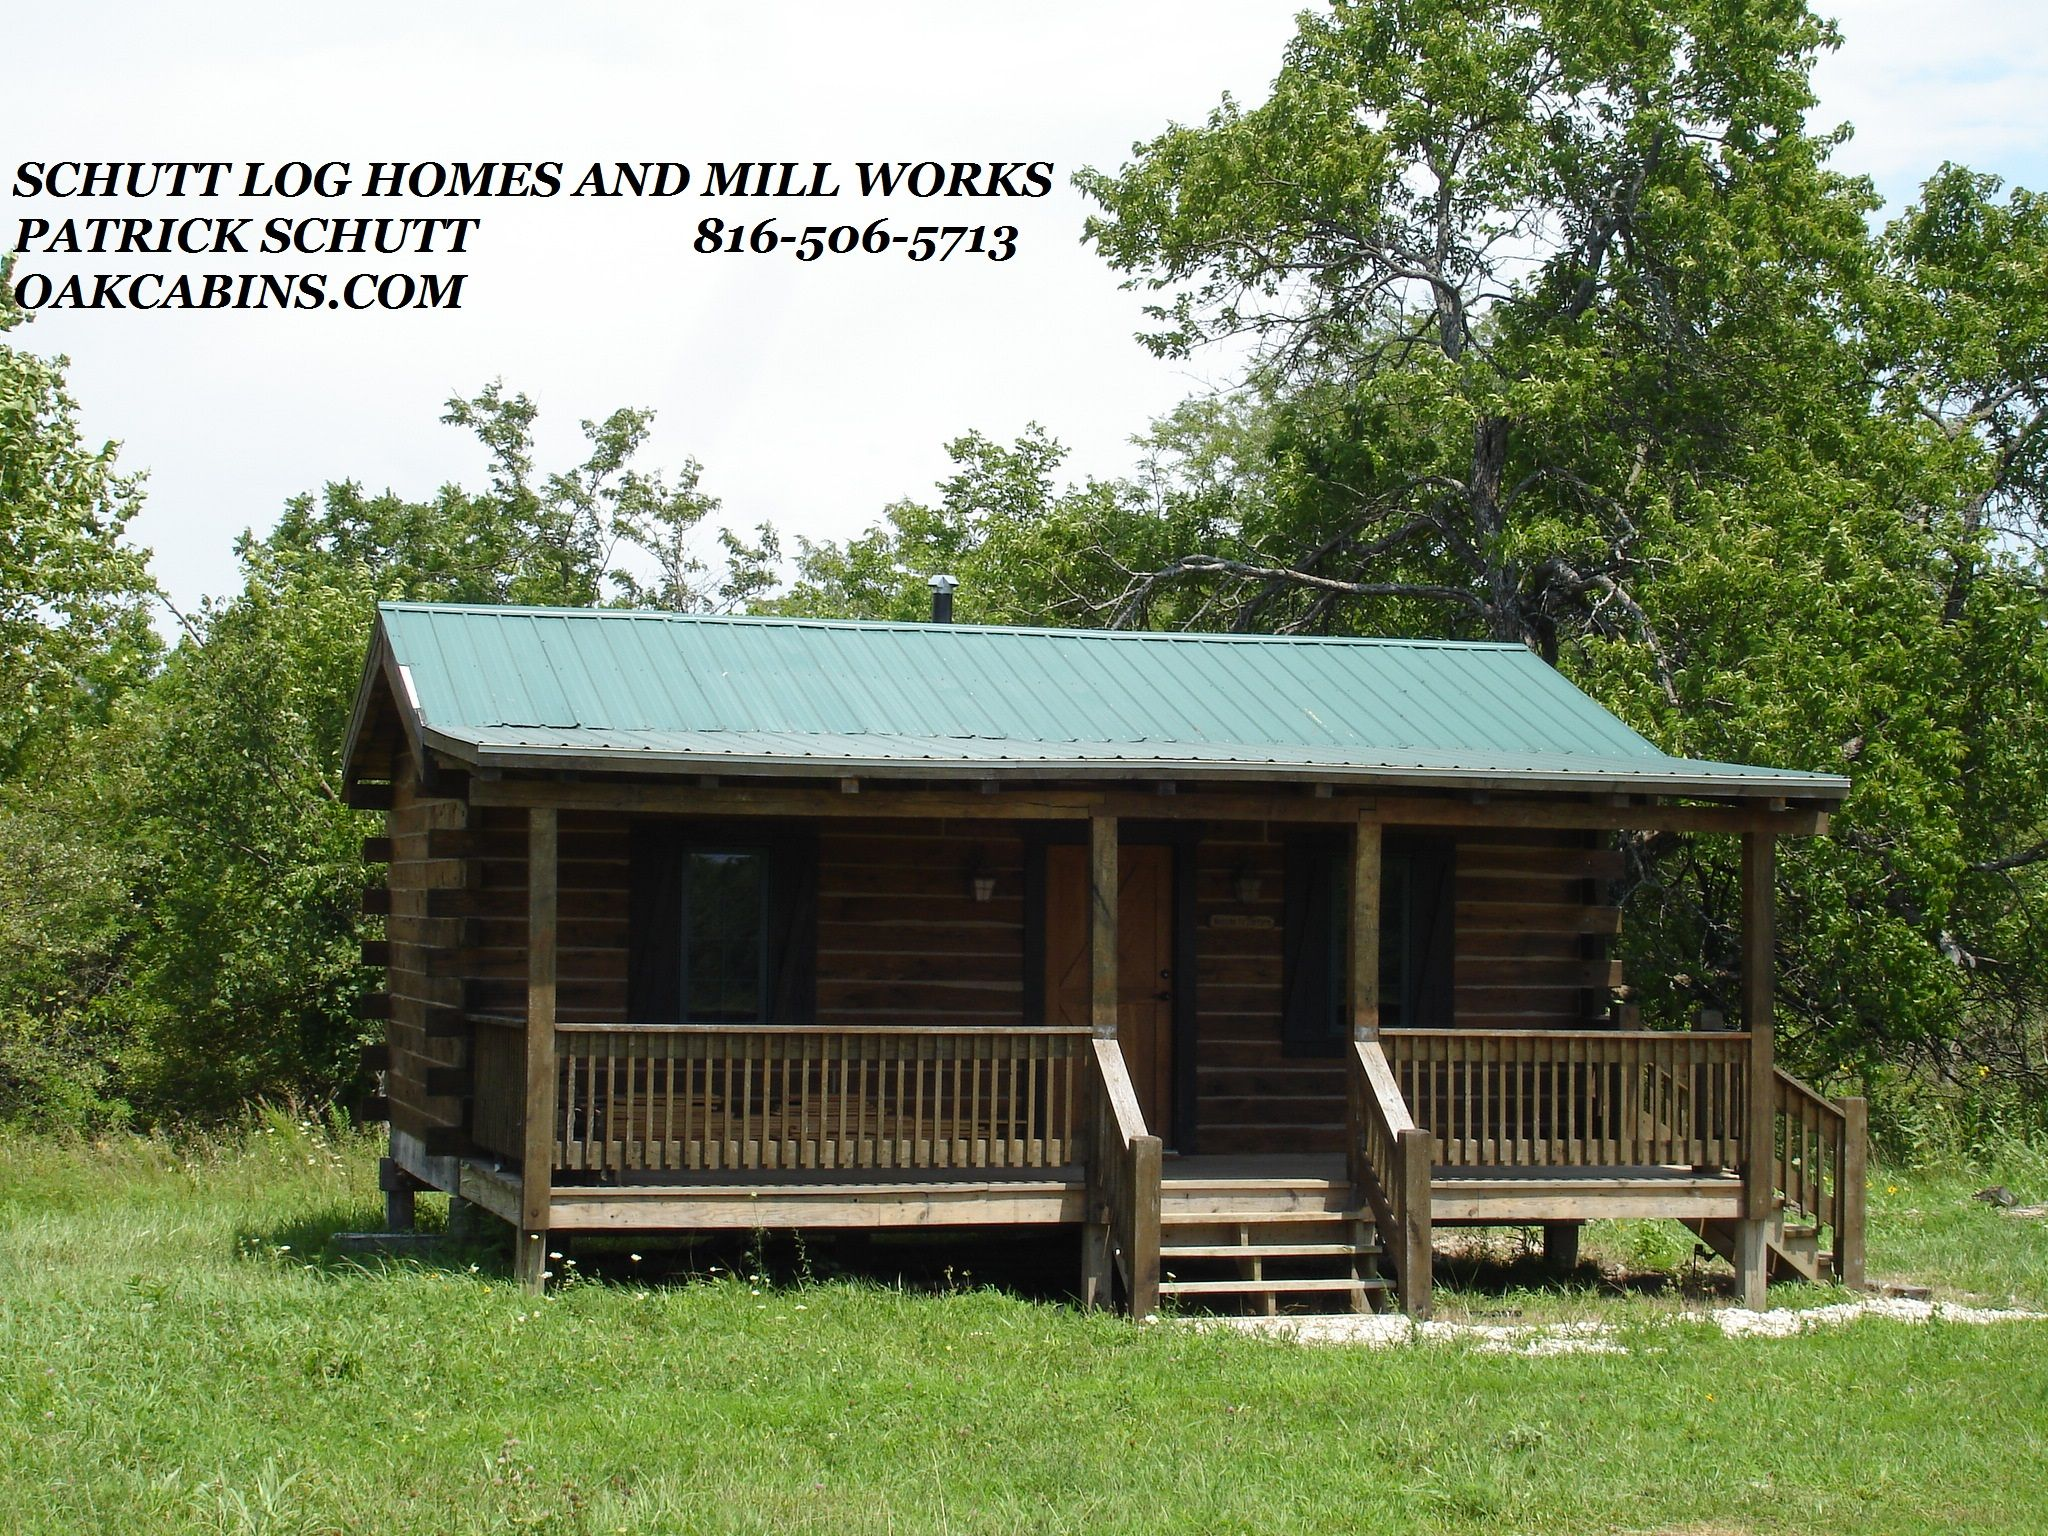 Schutt Log Homes And Mill Works  Hunting Cabin Kit, Itu0027s Adorable!